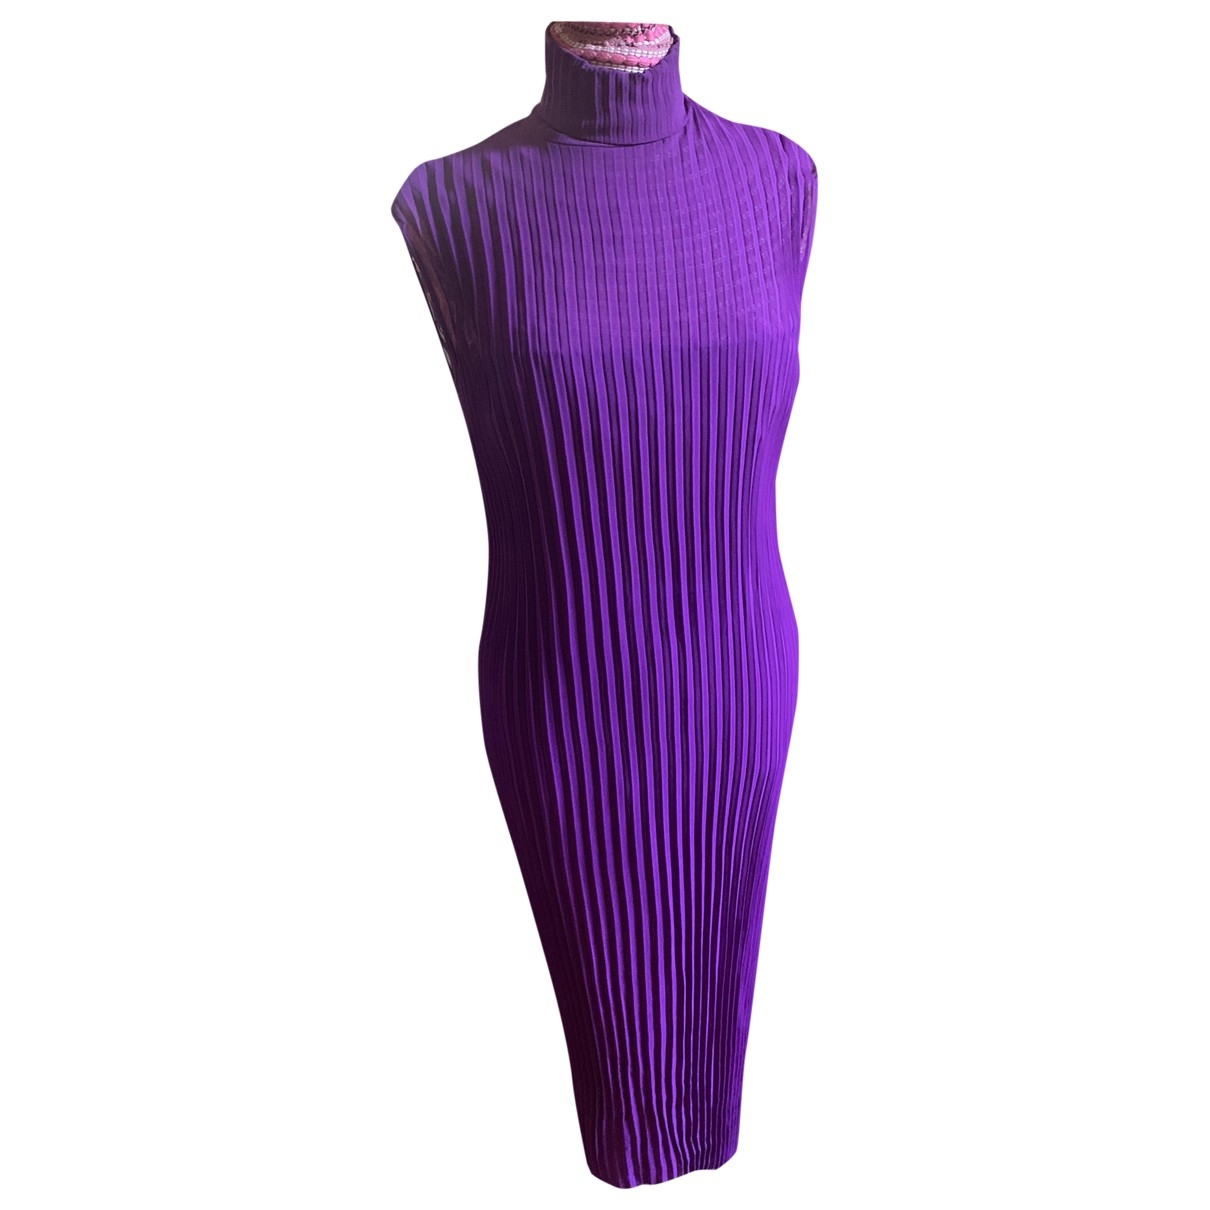 Dolce & Gabbana \N Purple dress for Women 44 IT